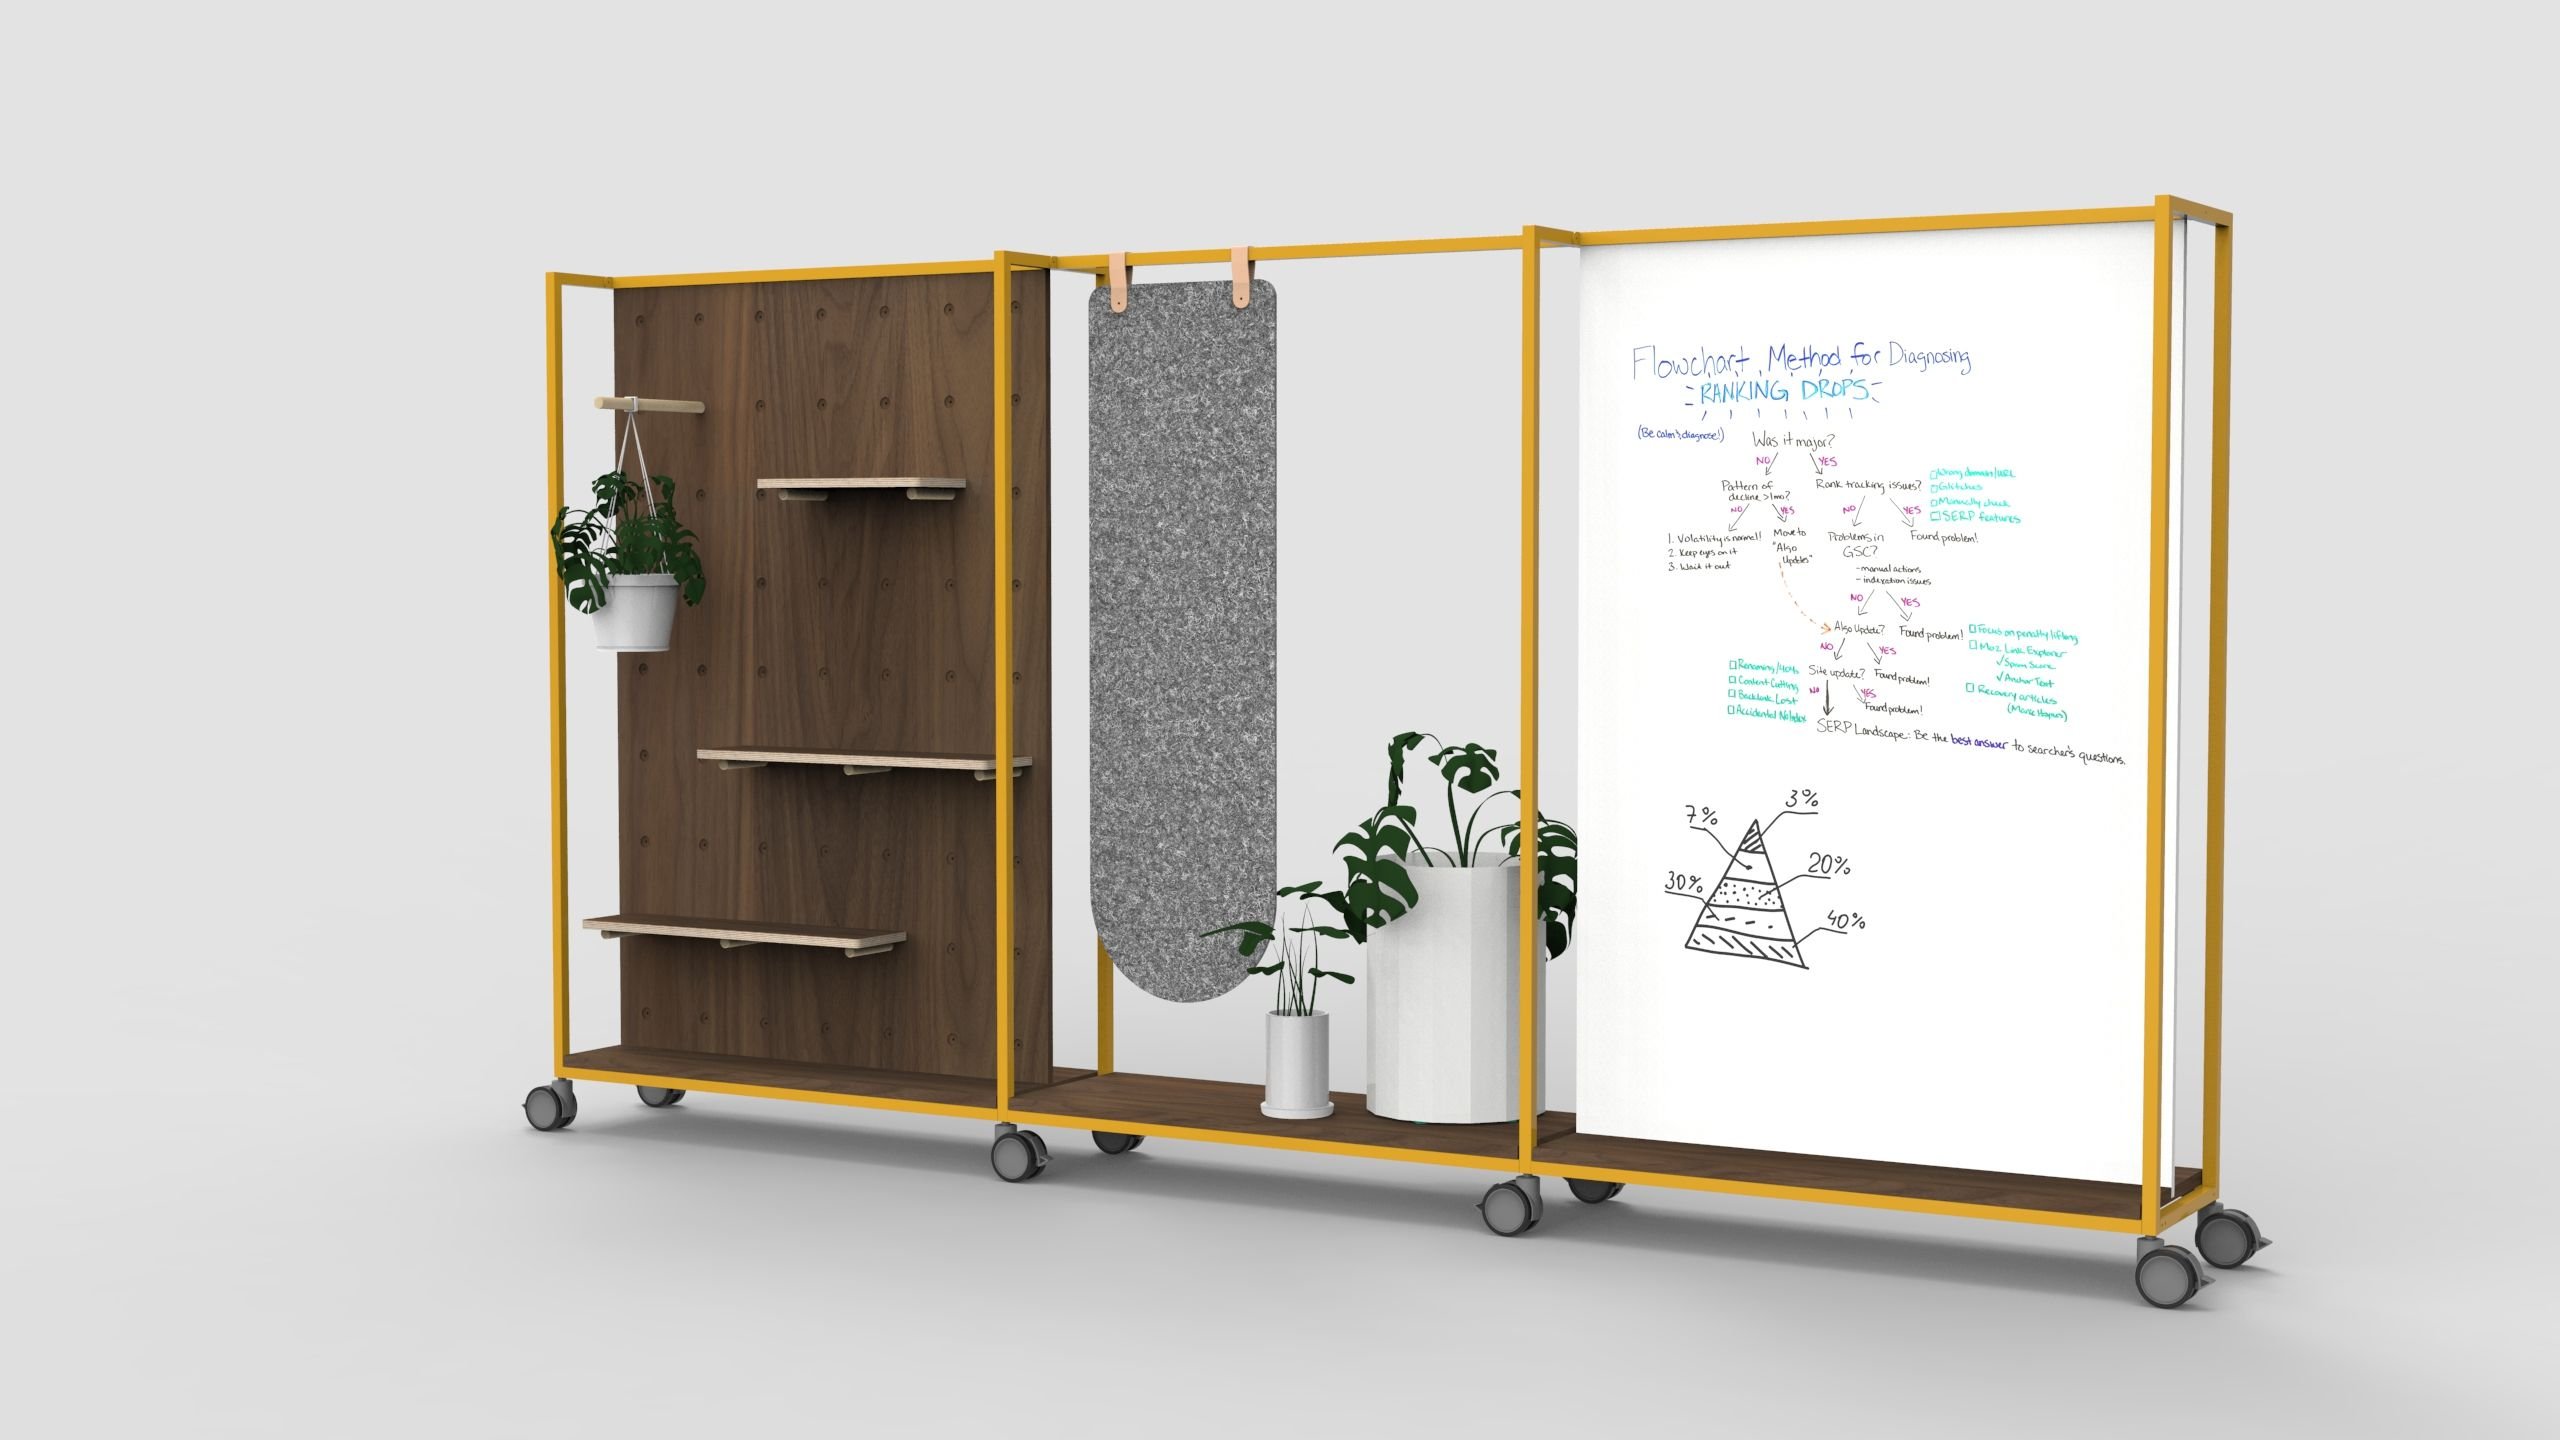 Corral Mobile Trellis Moveable Wall Whiteboard Wall Interior Design My trellis room divider